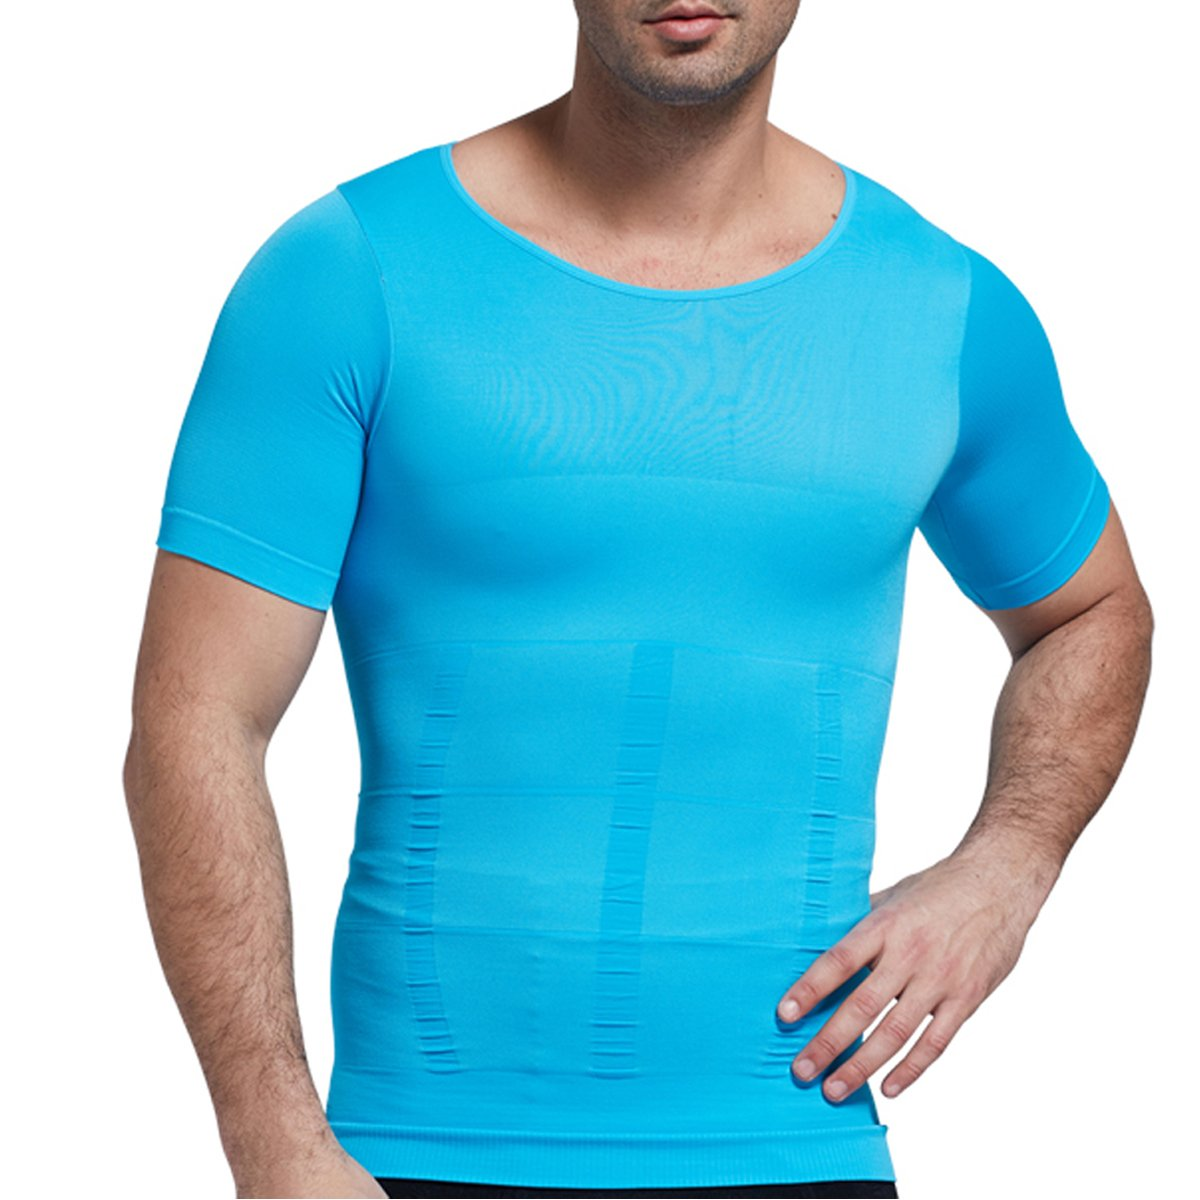 67a7c6298fcd3 Mens Short Sleeve Shirts Slimming Vest Warm Instant Weight Loss Belly Fat  Love Handles Remover Body ...